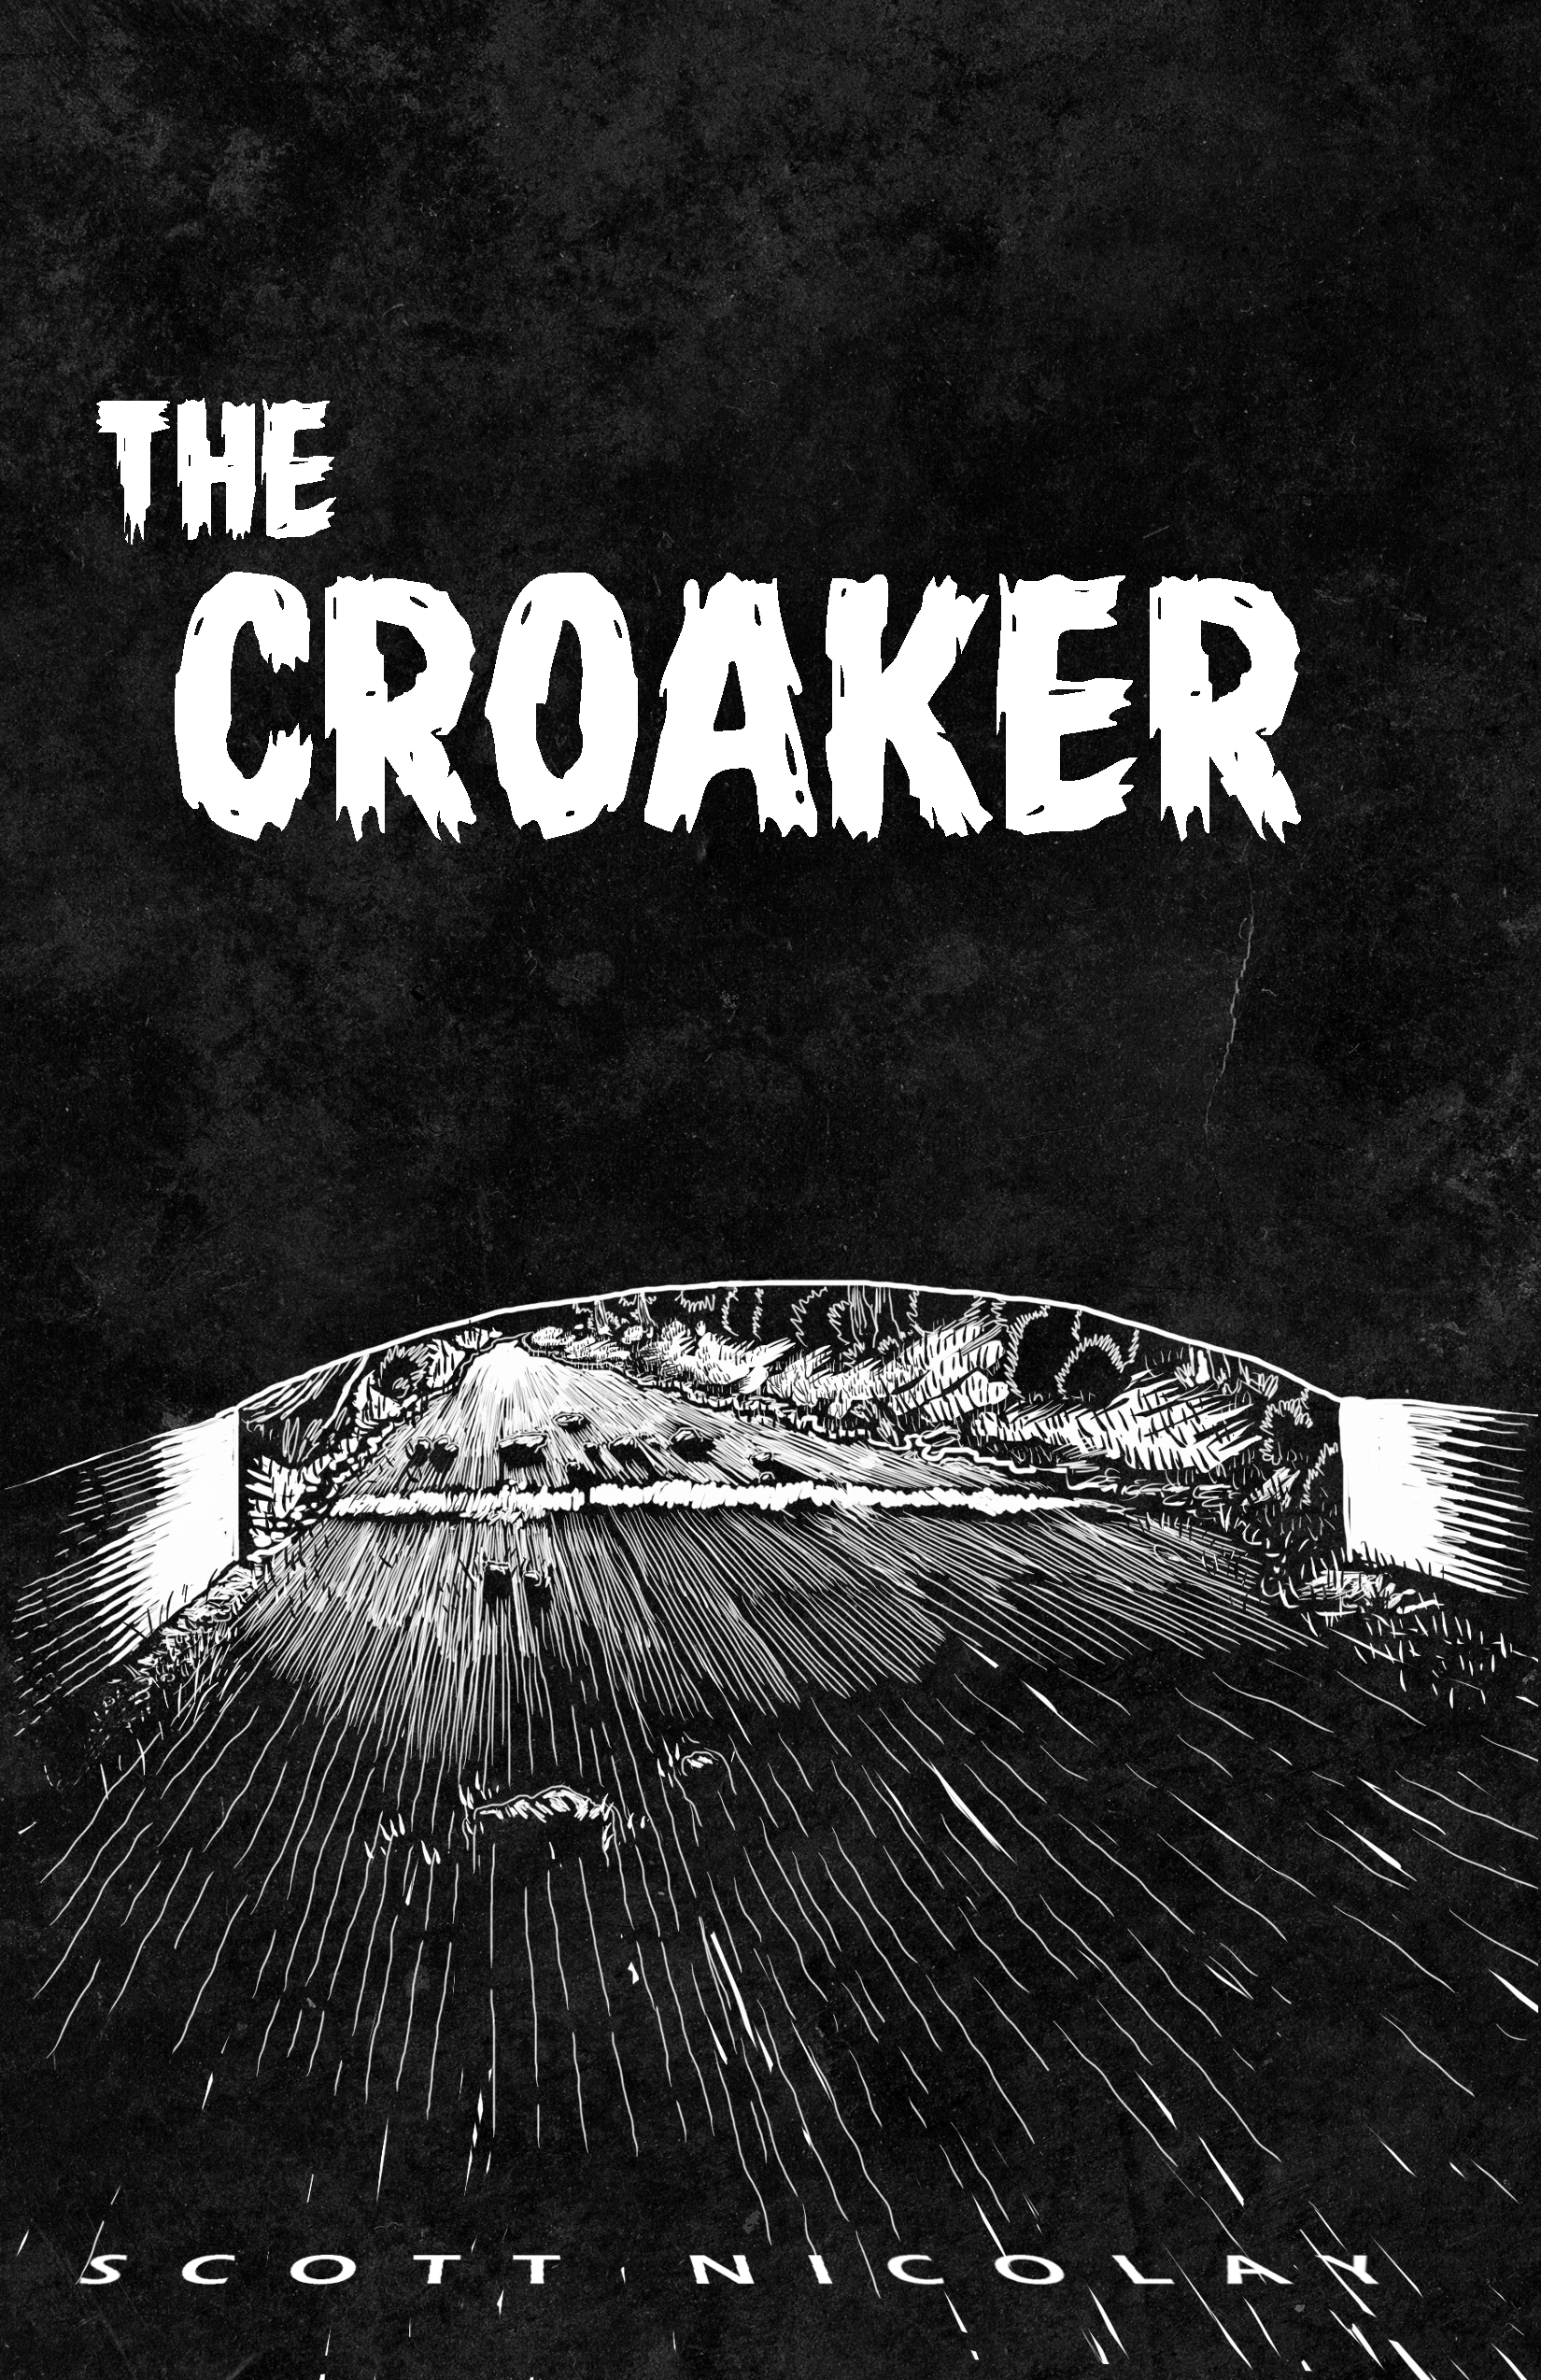 'The Croaker' by Scott Nicolay, promo art (2016)